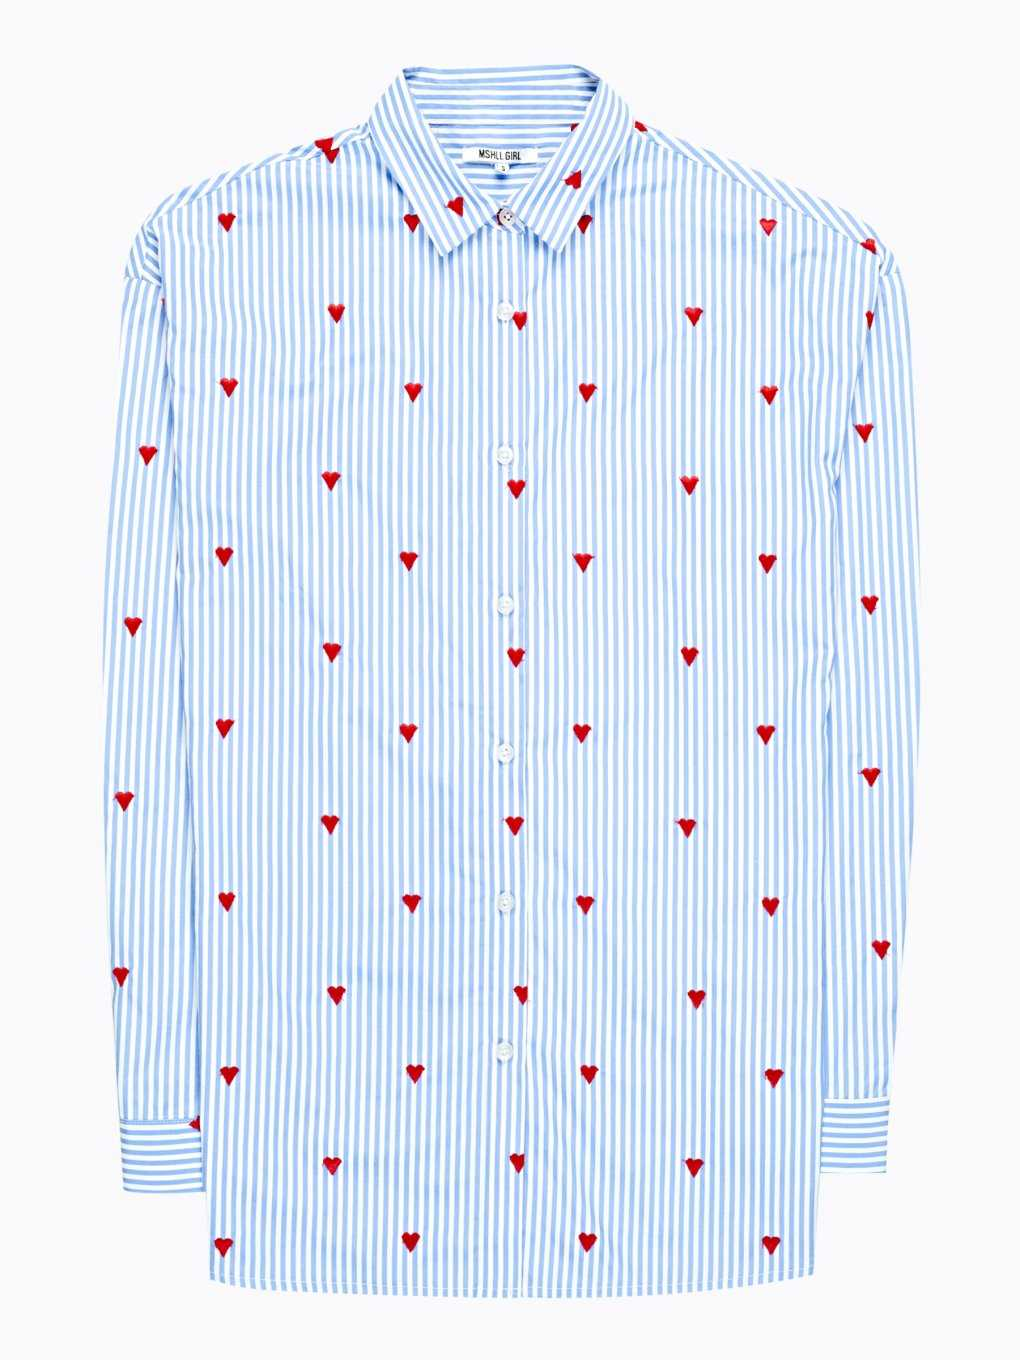 STRIPED SHIRT WITH HEARTS